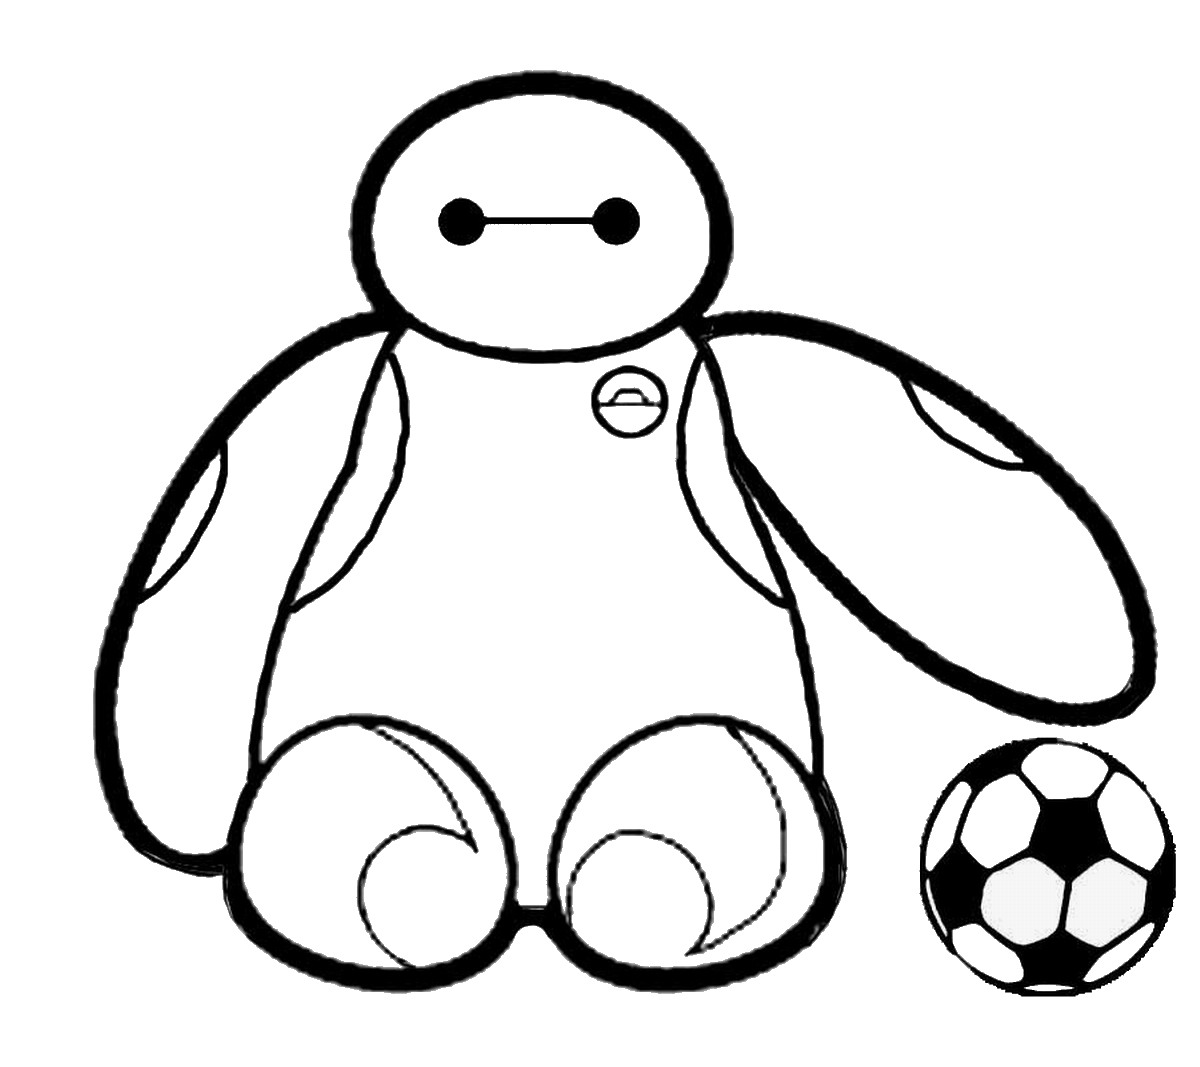 big coloring pages 15 awesome big hero 6 coloring pages for kids  coloring pages big coloring